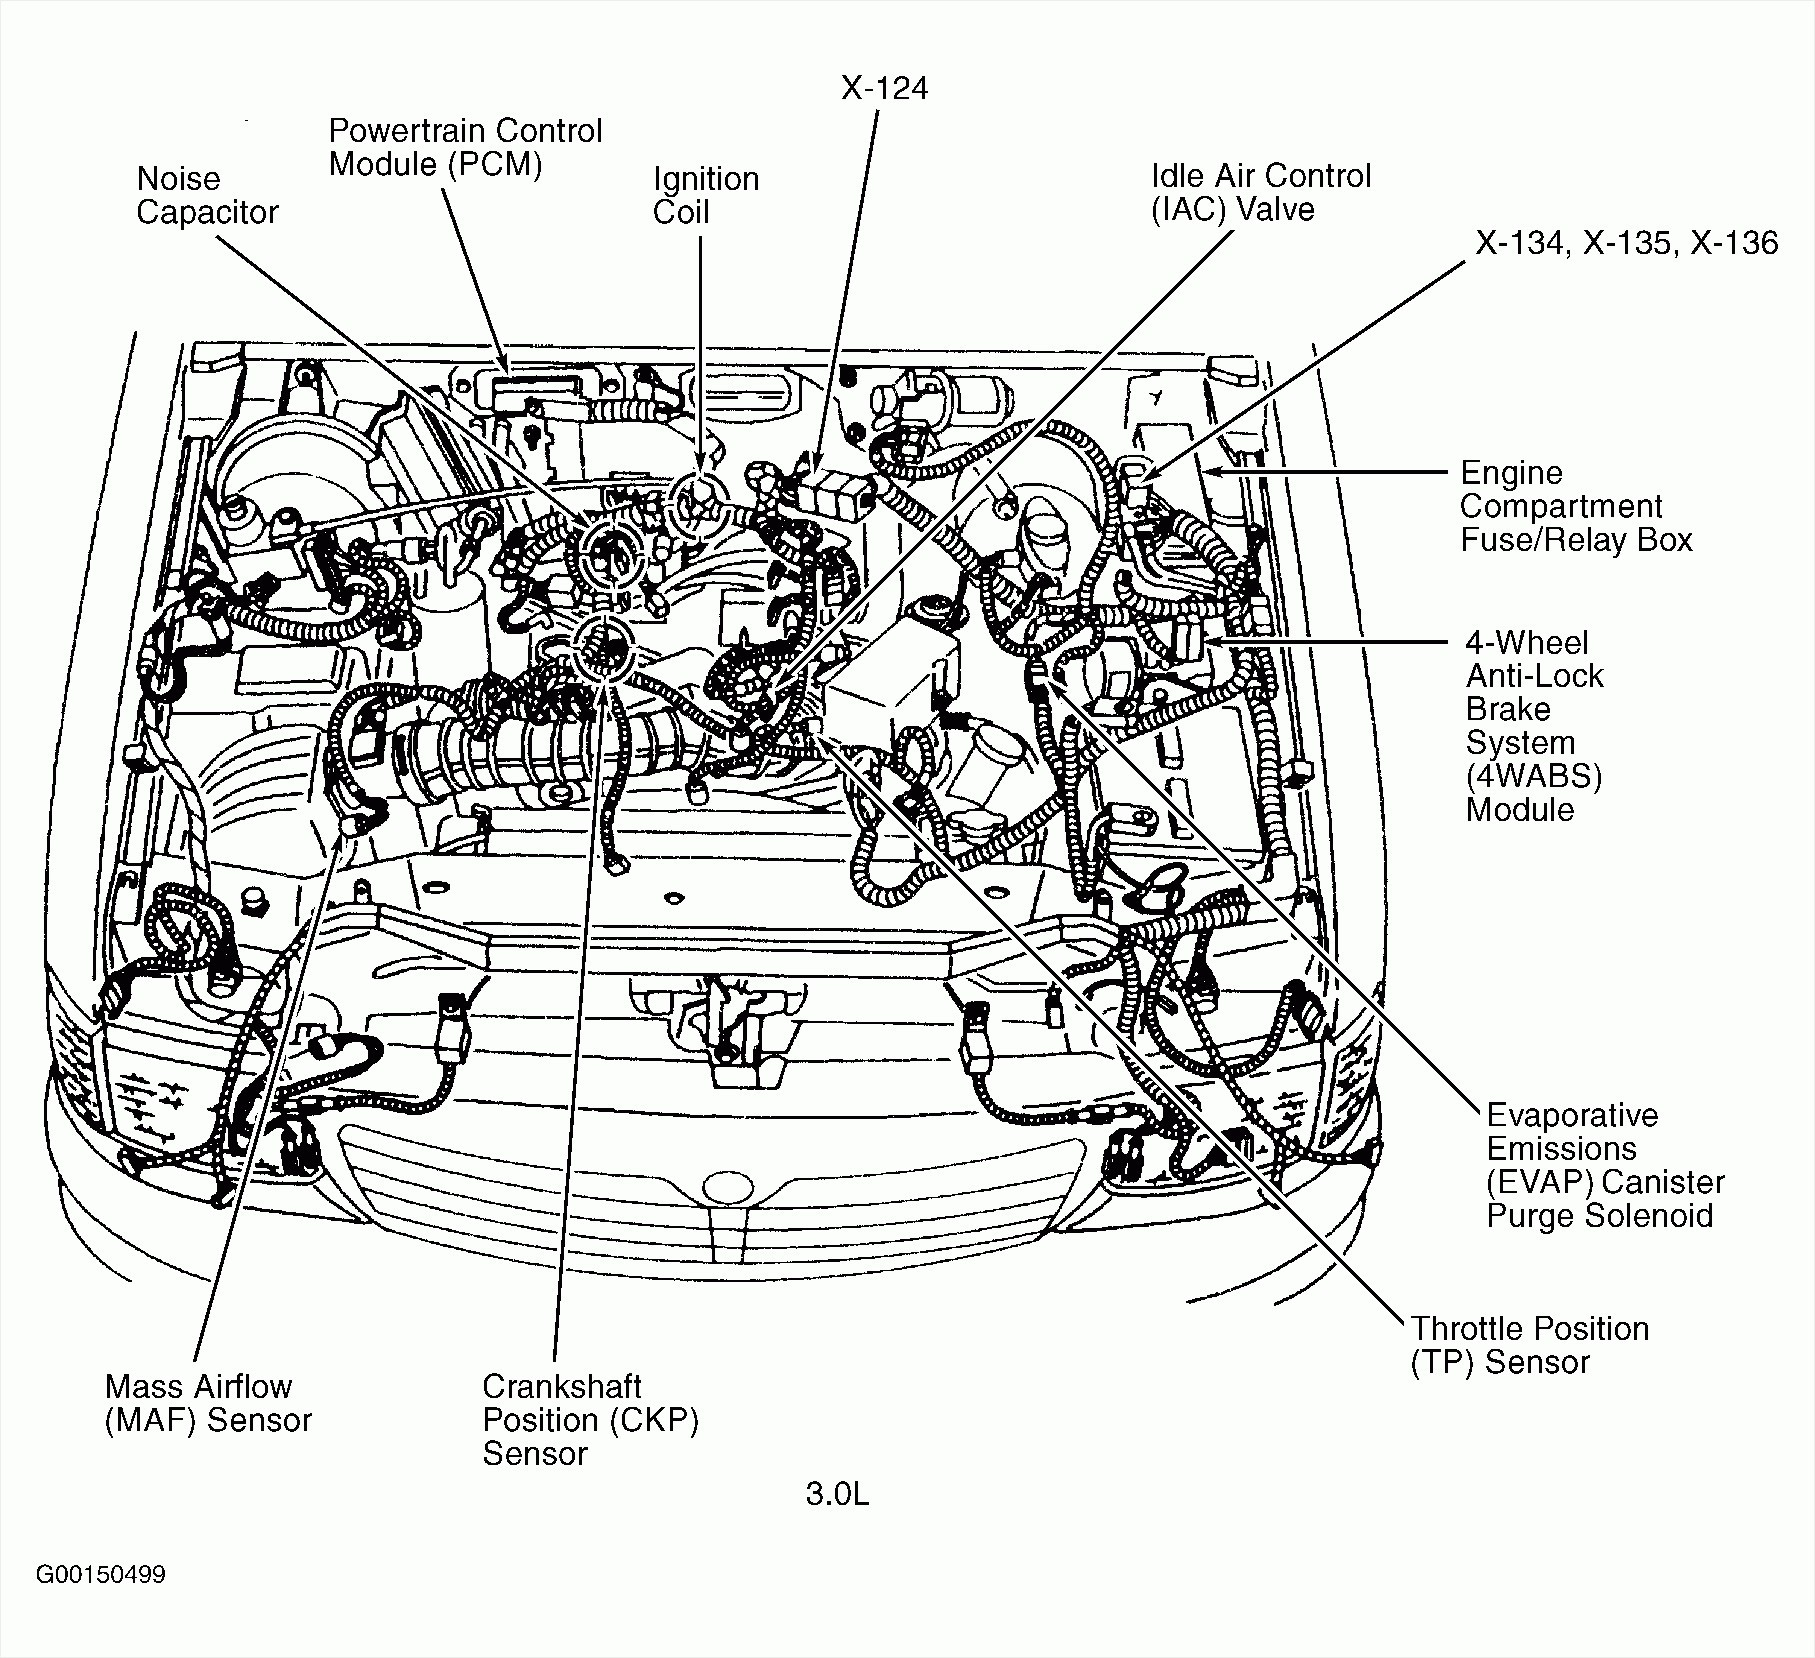 2004 chevrolet venture engine diagram wiring diagram for 2002 chevy venture wiring diagram  wiring diagram for 2002 chevy venture